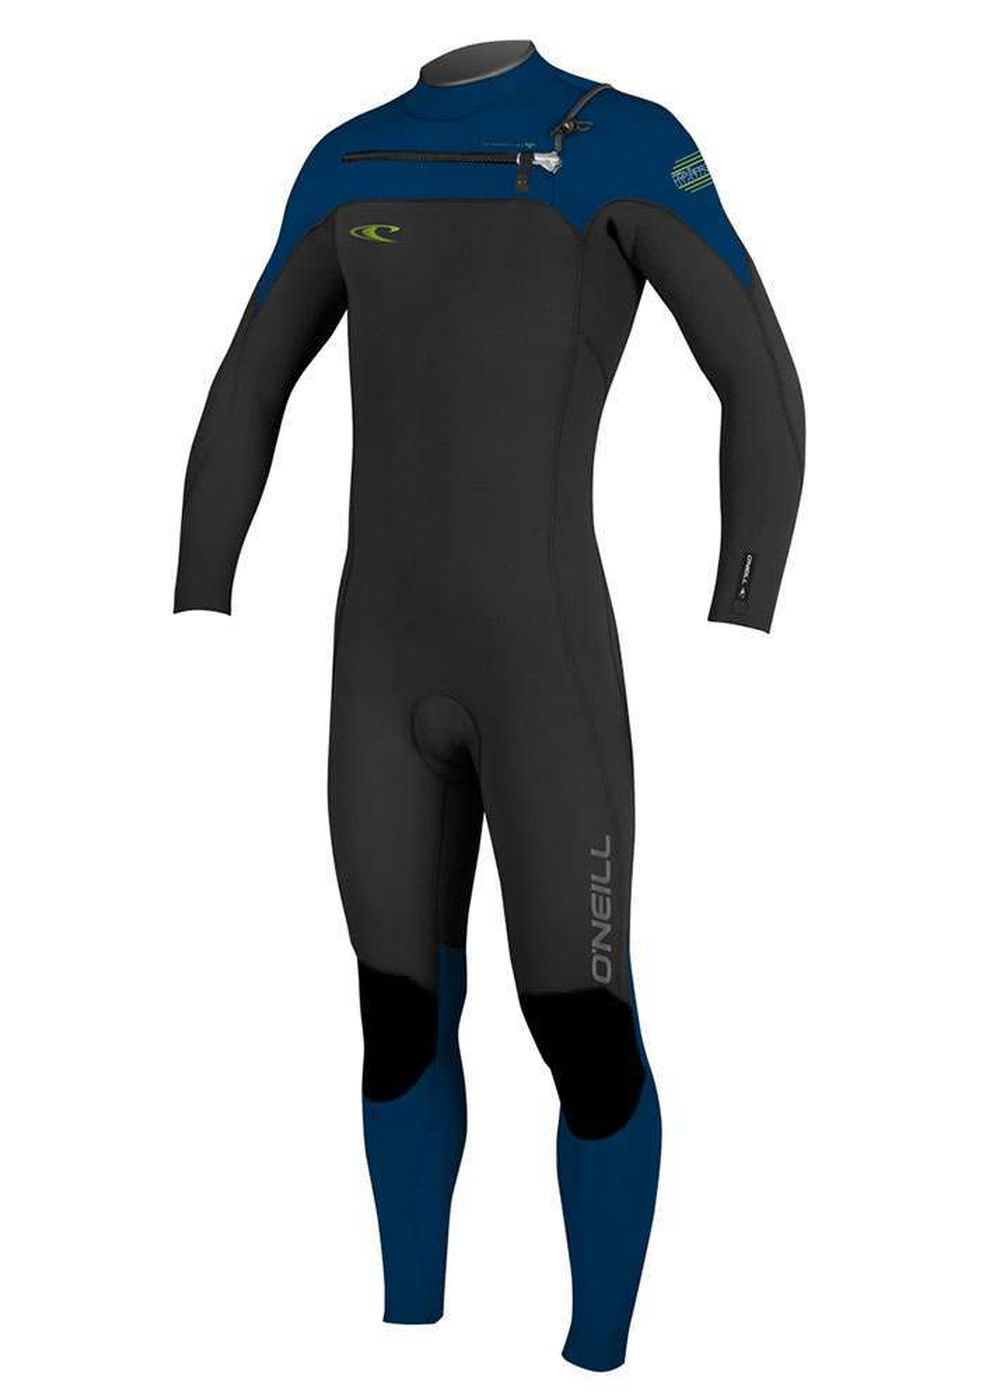 Oneill Hyperfreak 3/2 Gbs Wetsuit 2017 Blk/nvy/neo Picture